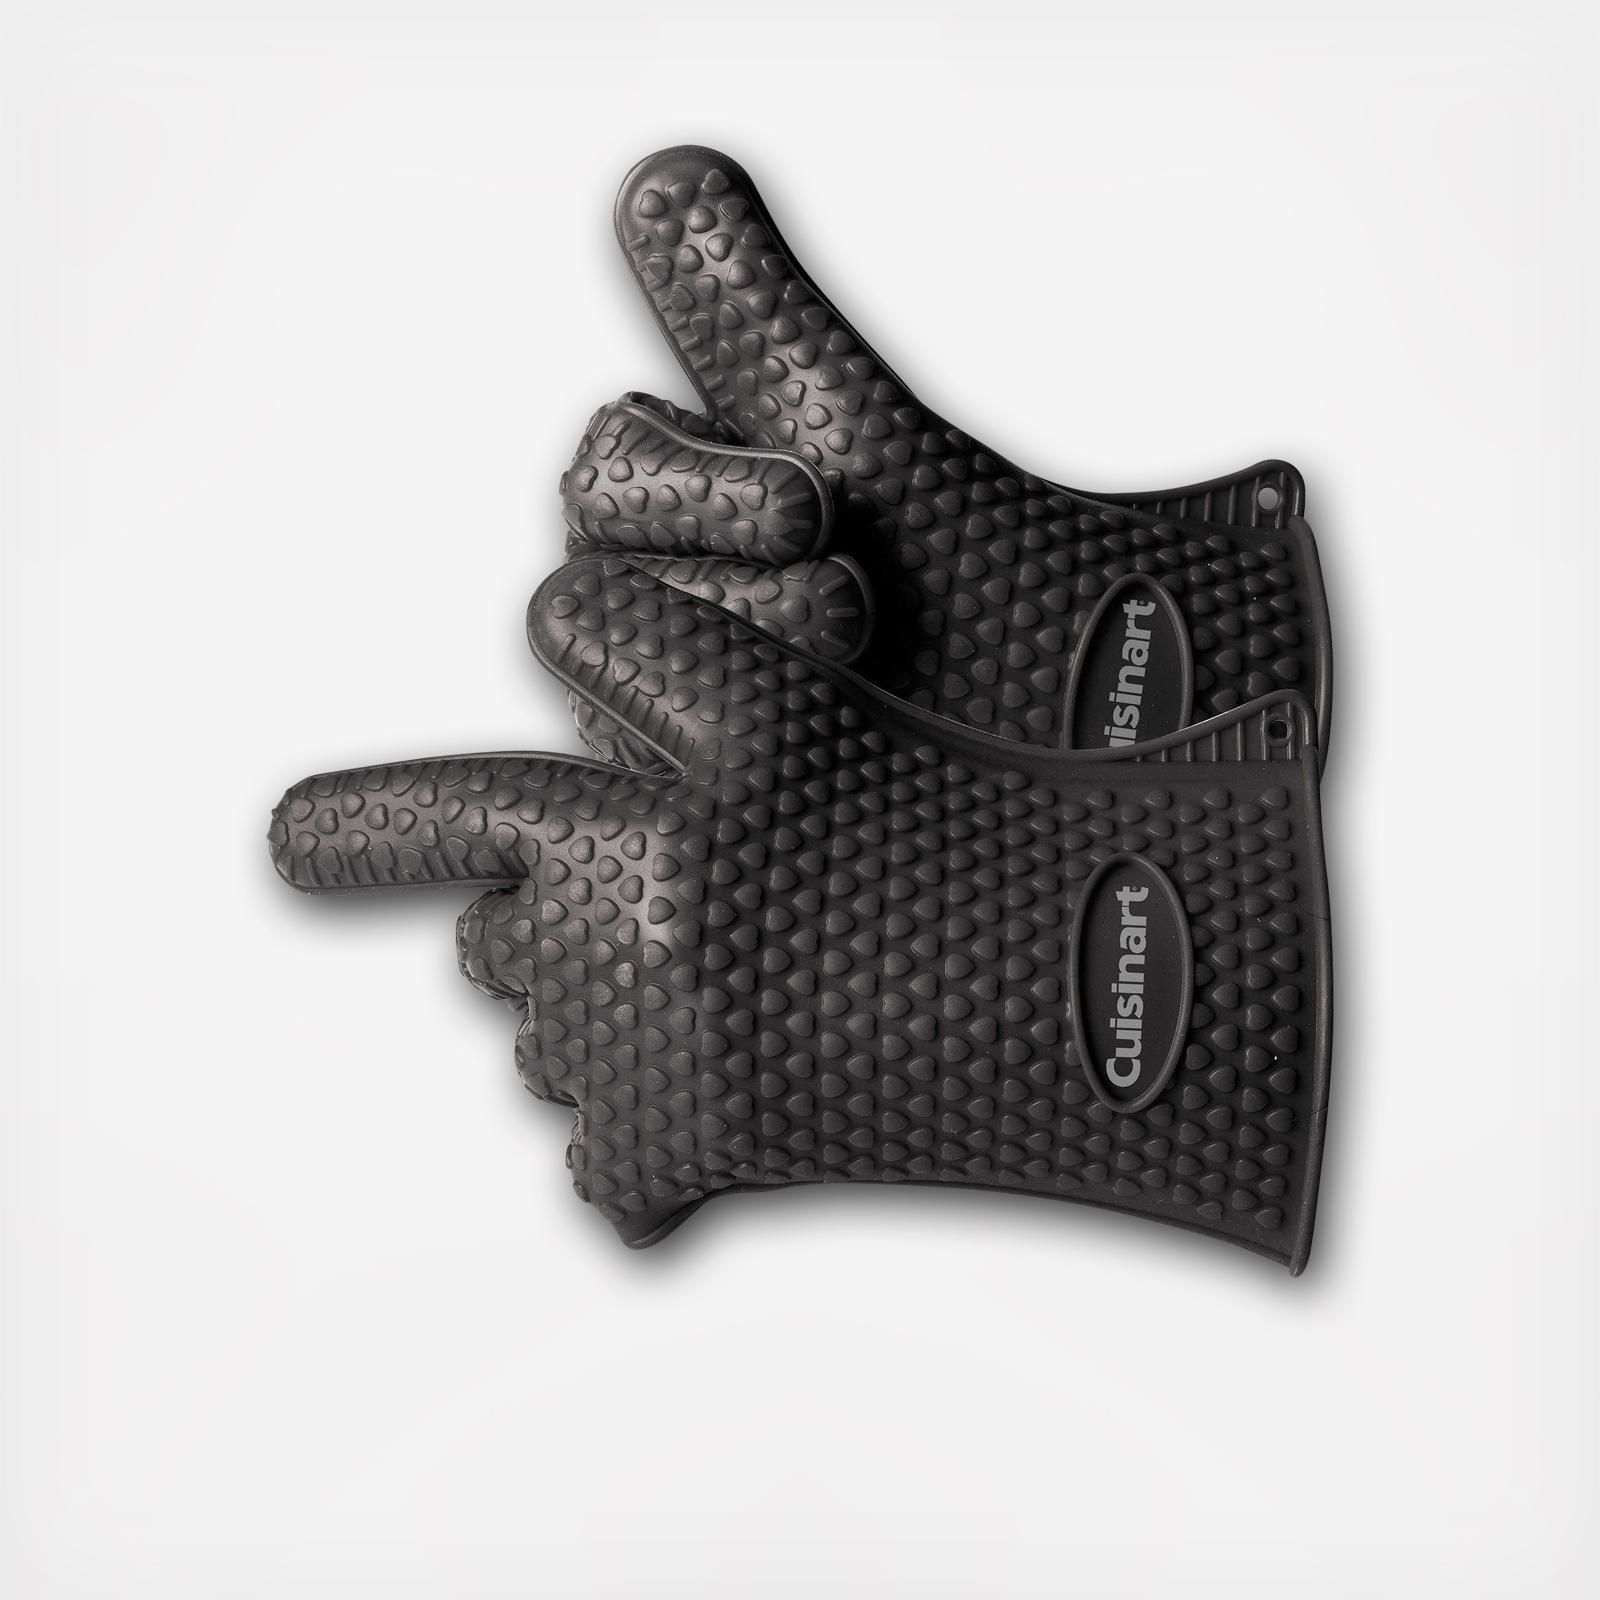 Cuisinart S Heat Resistant Silicone Gloves Are Perfect For Working With A Grill Or Smoker Since The Glov Silicone Gloves Heat Resistant Silicone Zola Registry